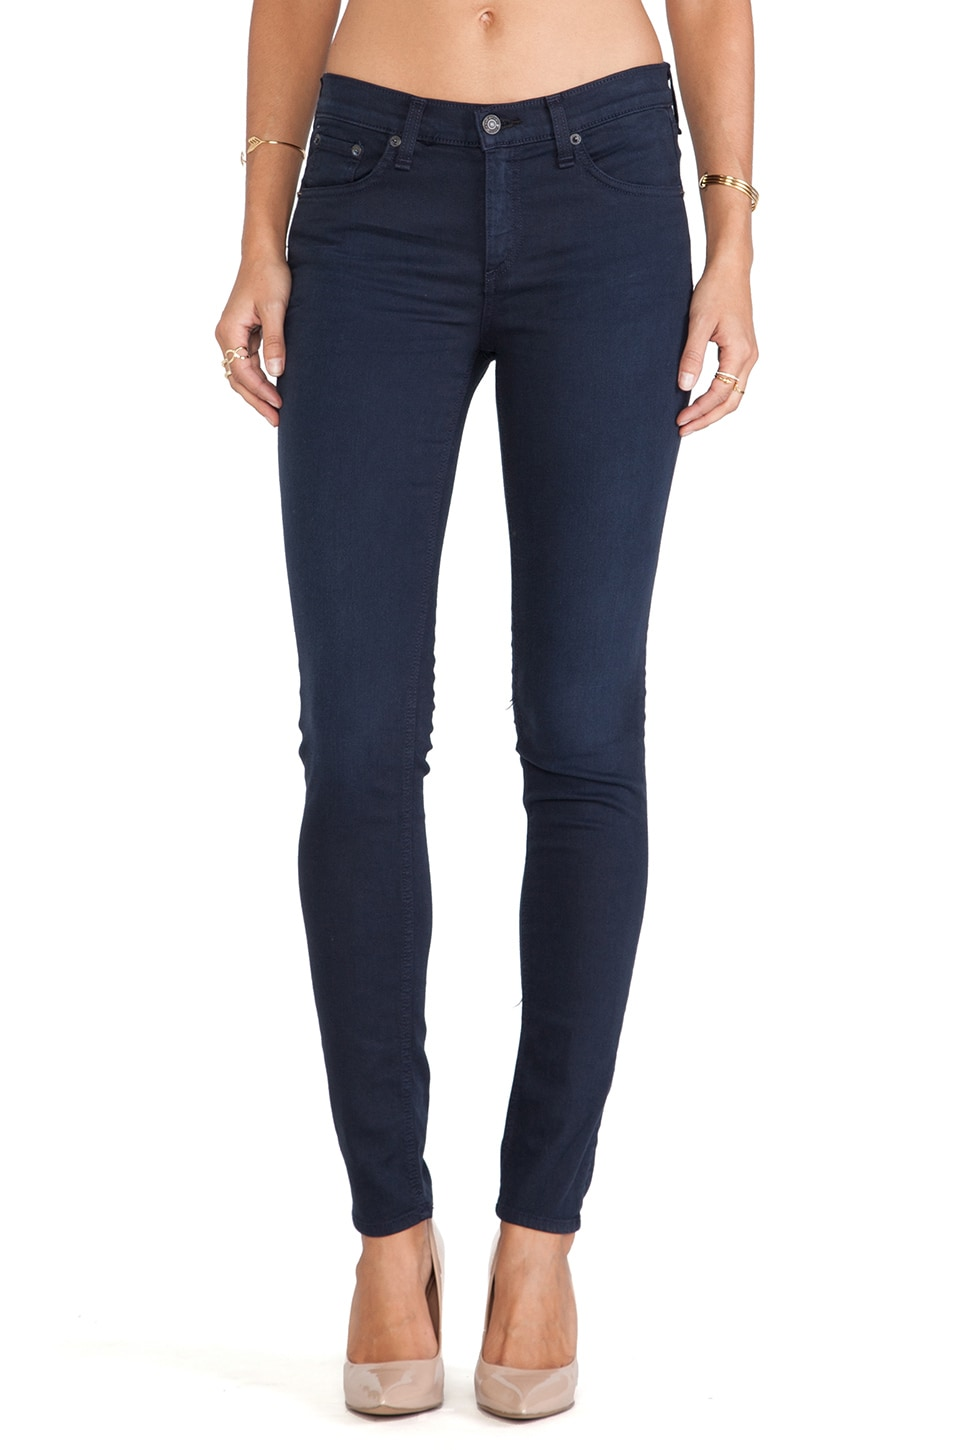 rag & bone/JEAN The Skinny in Distressed Navy